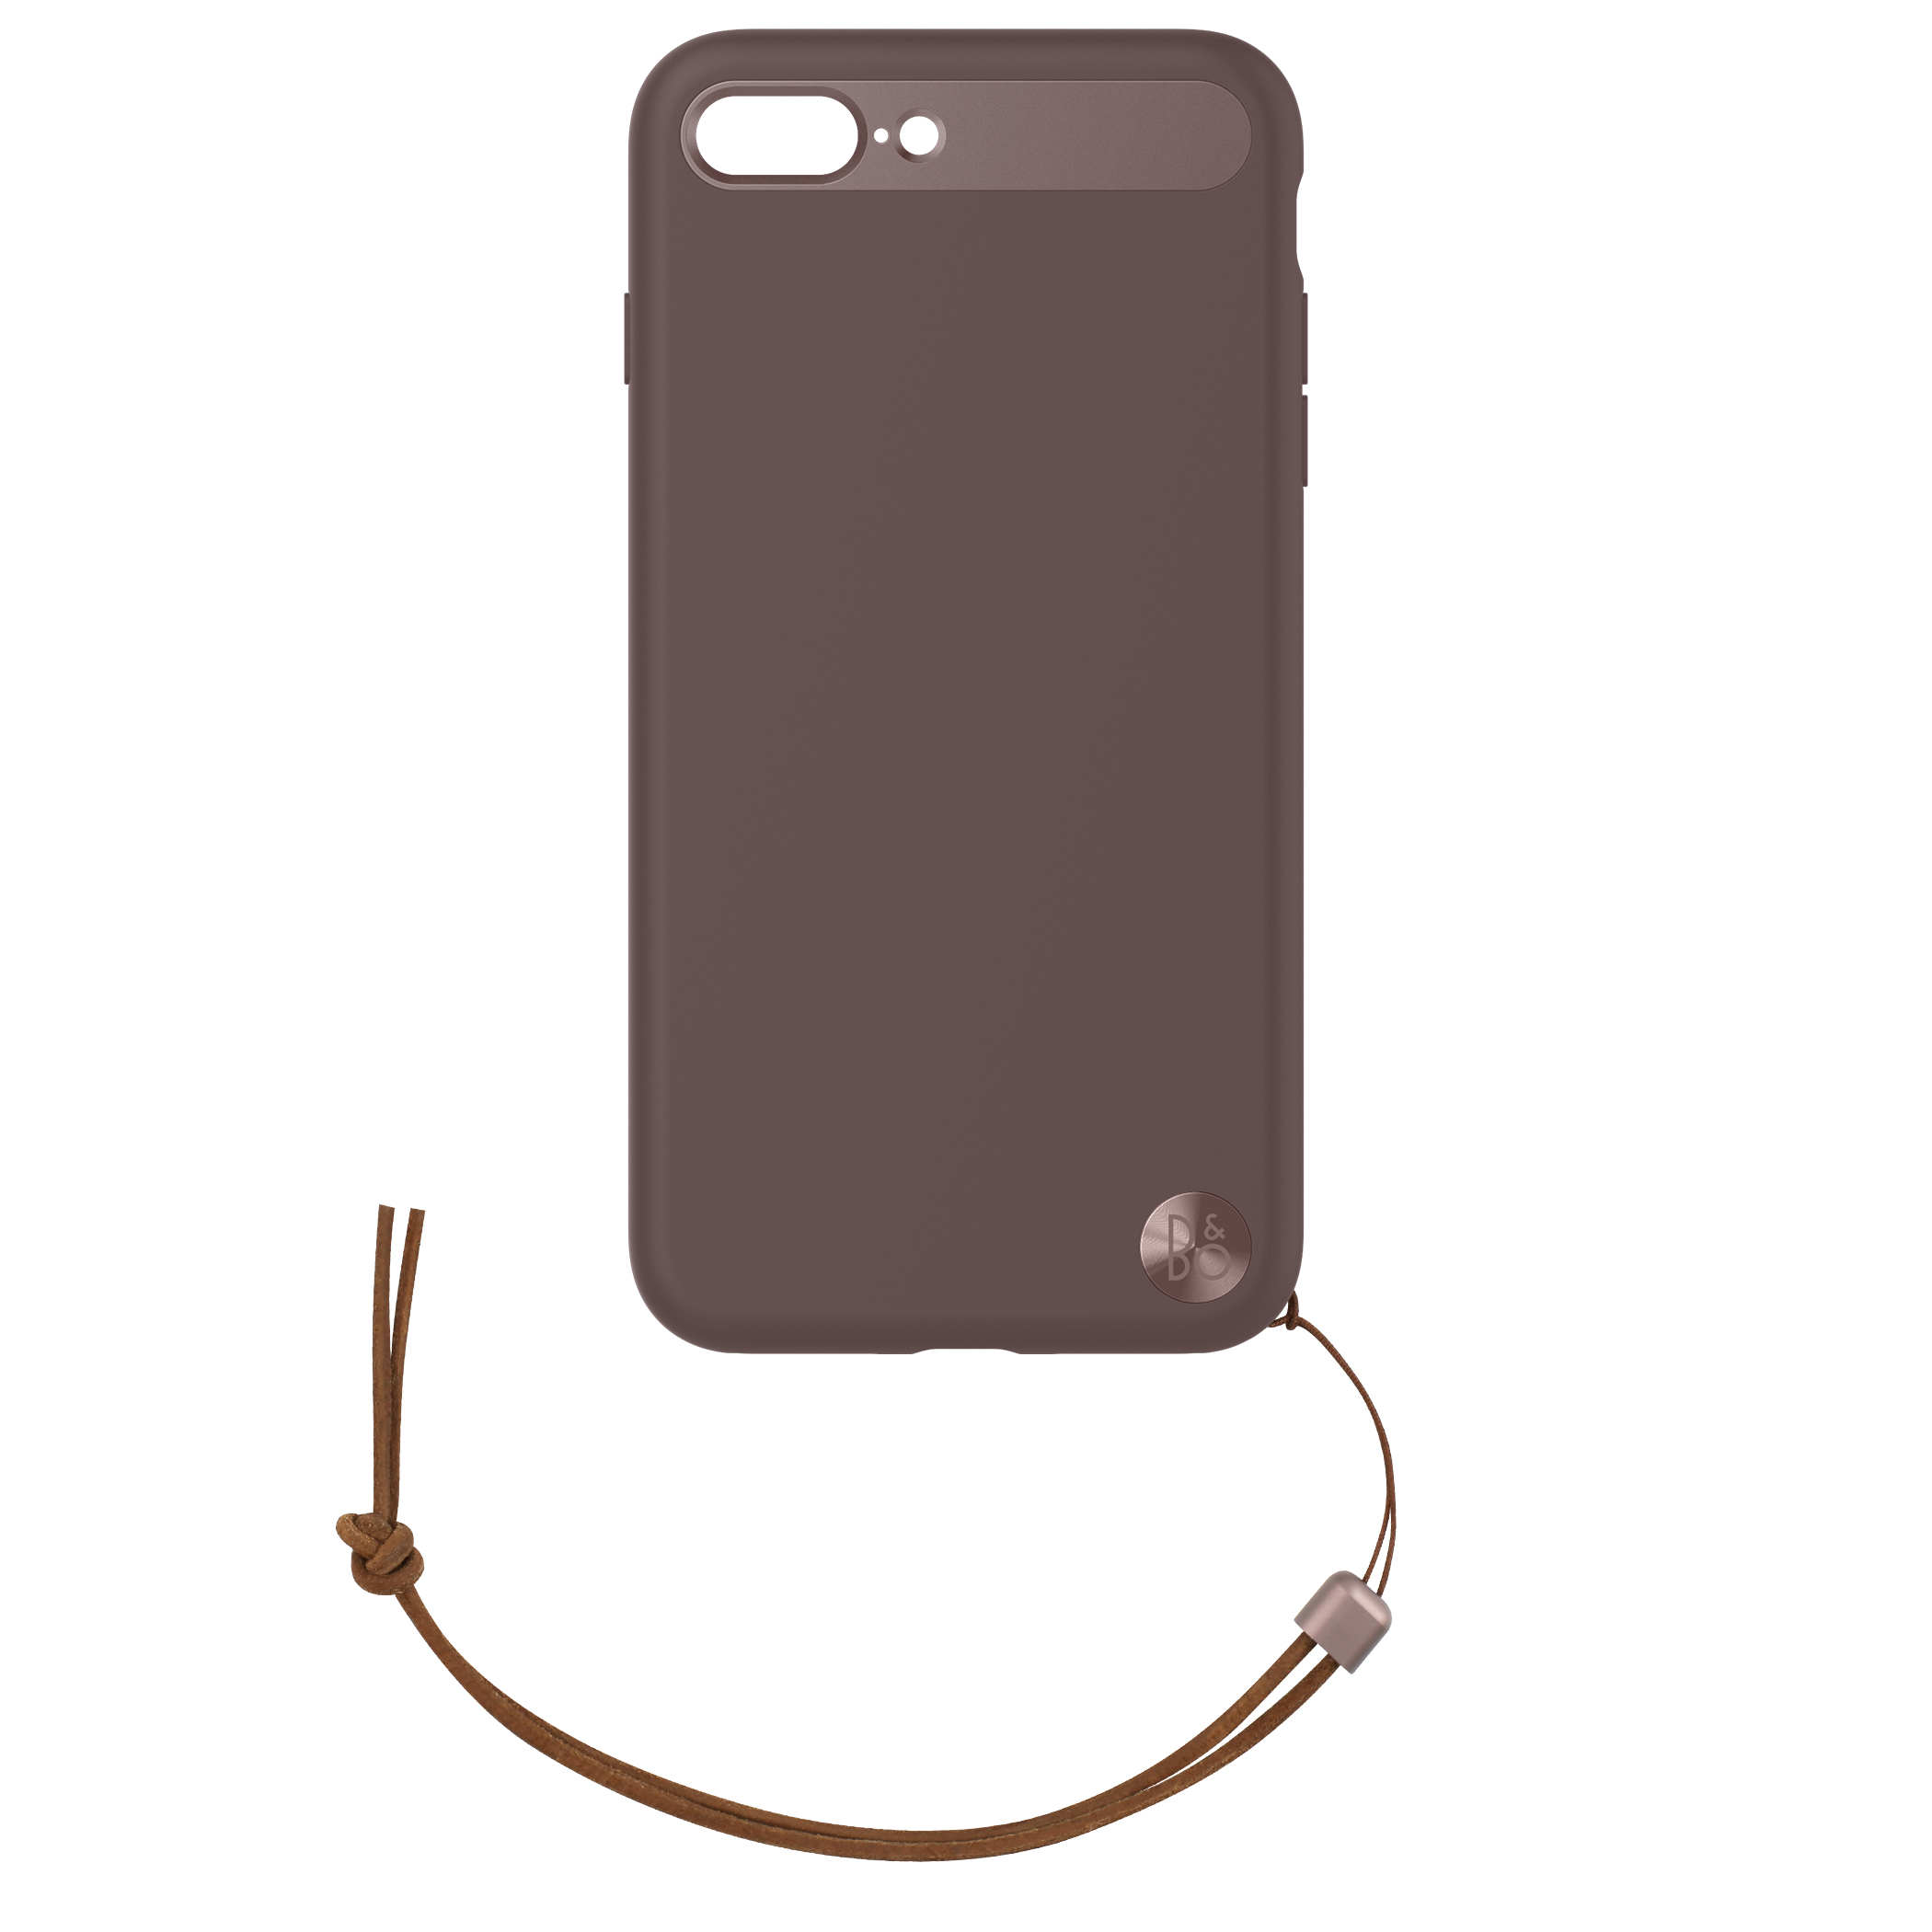 detailed look 28d1d 43812 B&O PLAY Case with Lanyard for iPhone 7 Plus - Deep Red